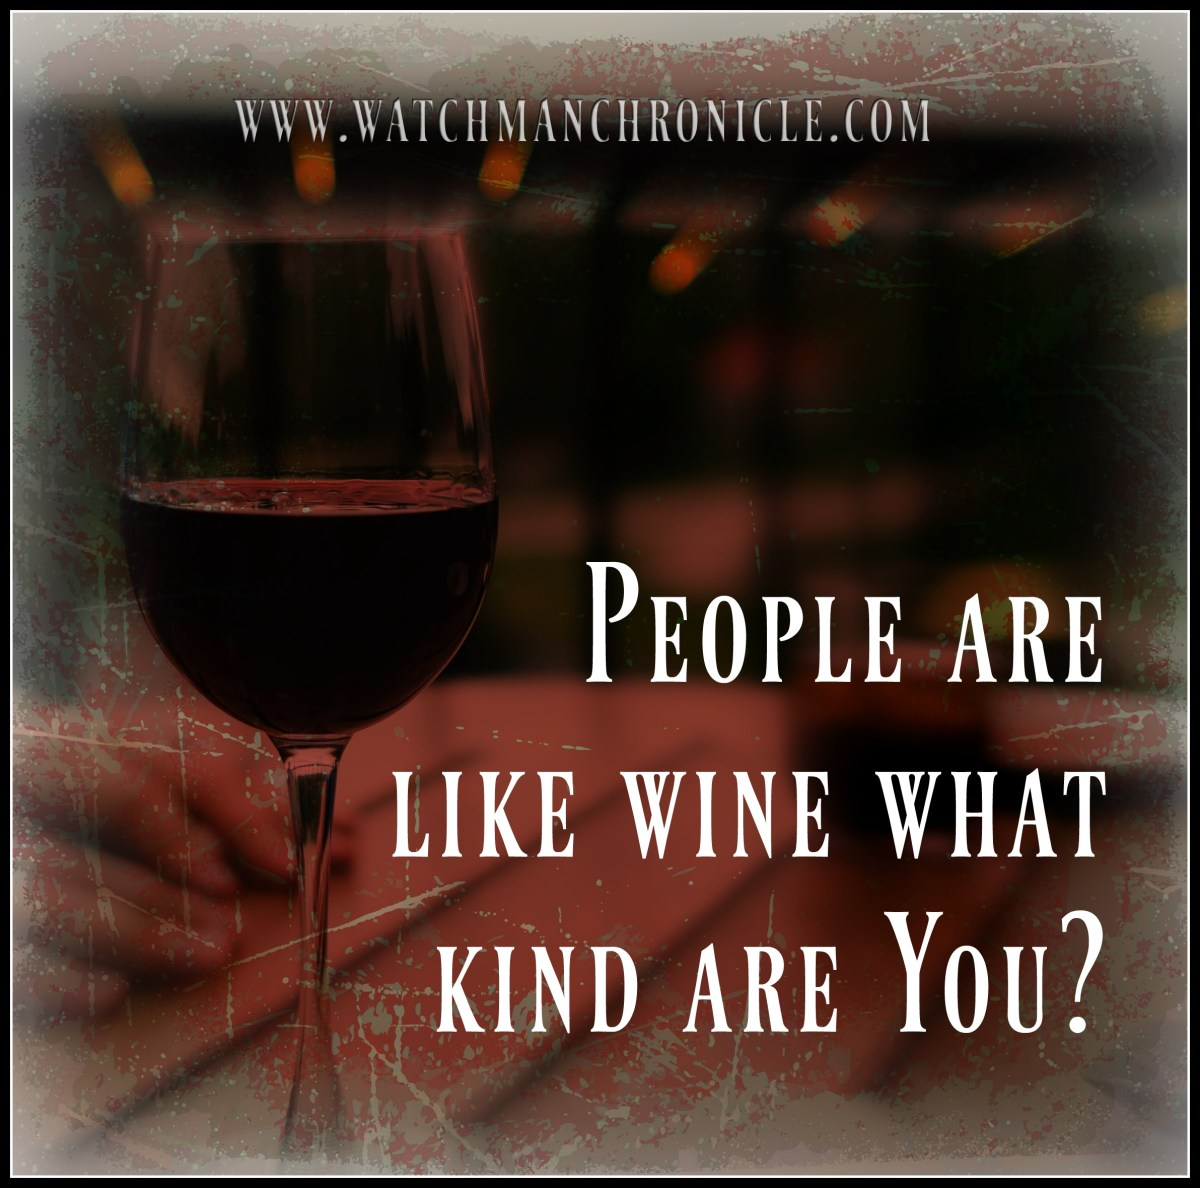 People are like wine what Kind are you?